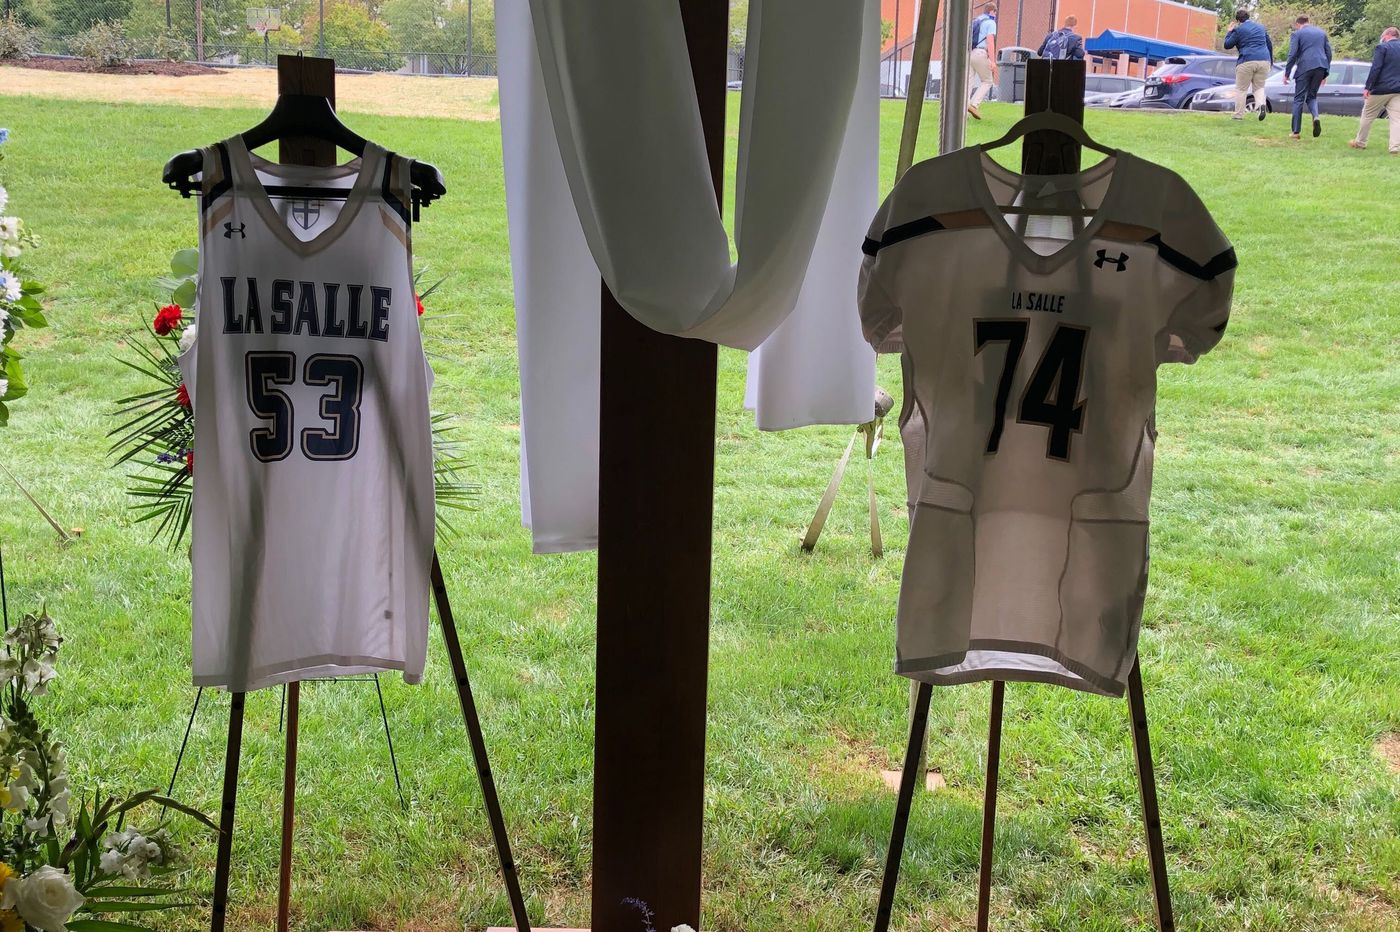 La Salle football player Isaiah Turner died of a sickle cell crisis